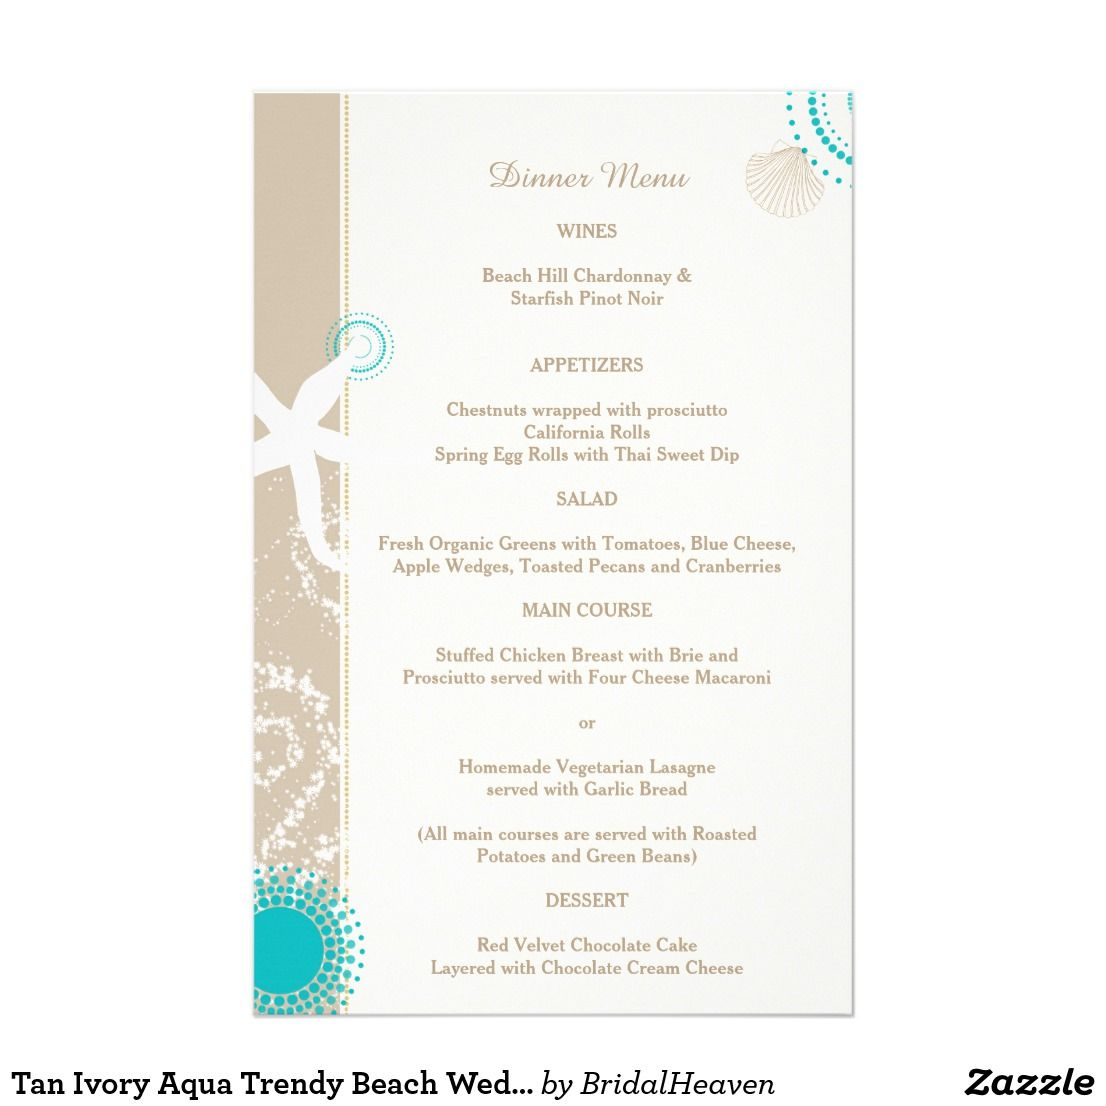 Tan Ivory Aqua Trendy Beach Wedding Menu Wedding Dinner Menu